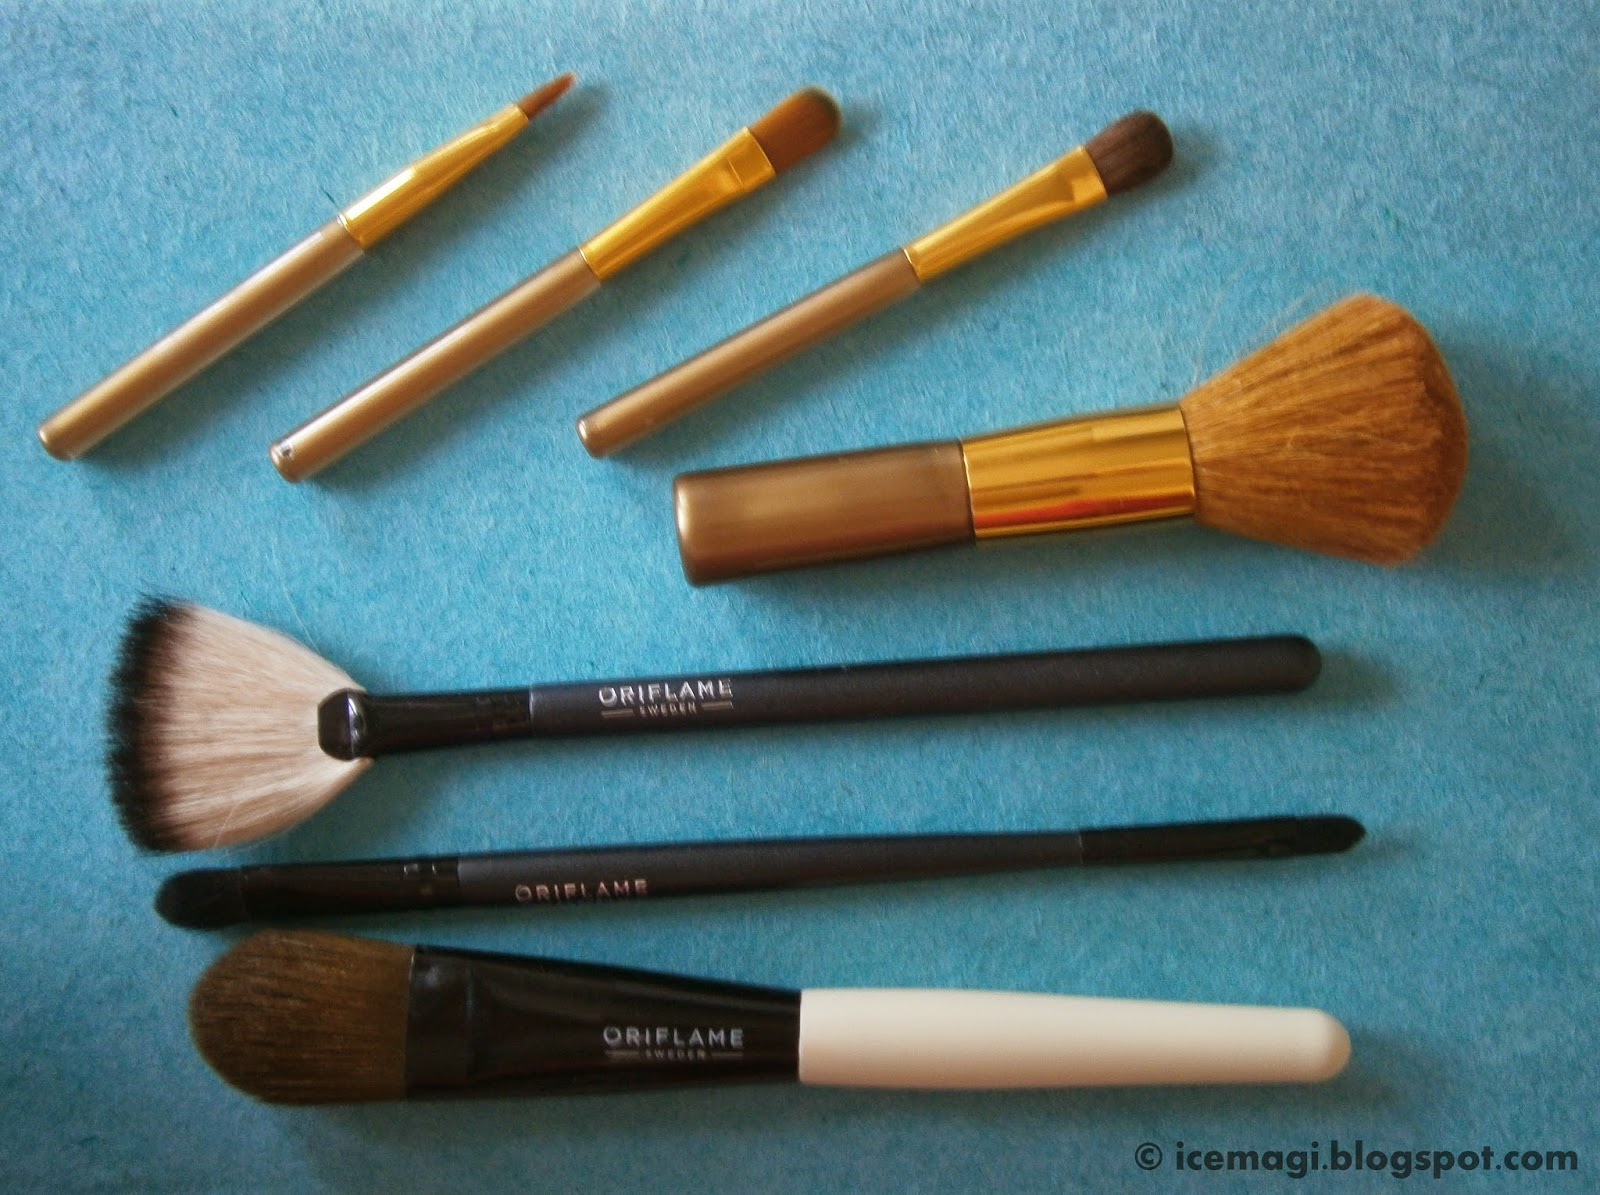 Avon & Oriflame brushes